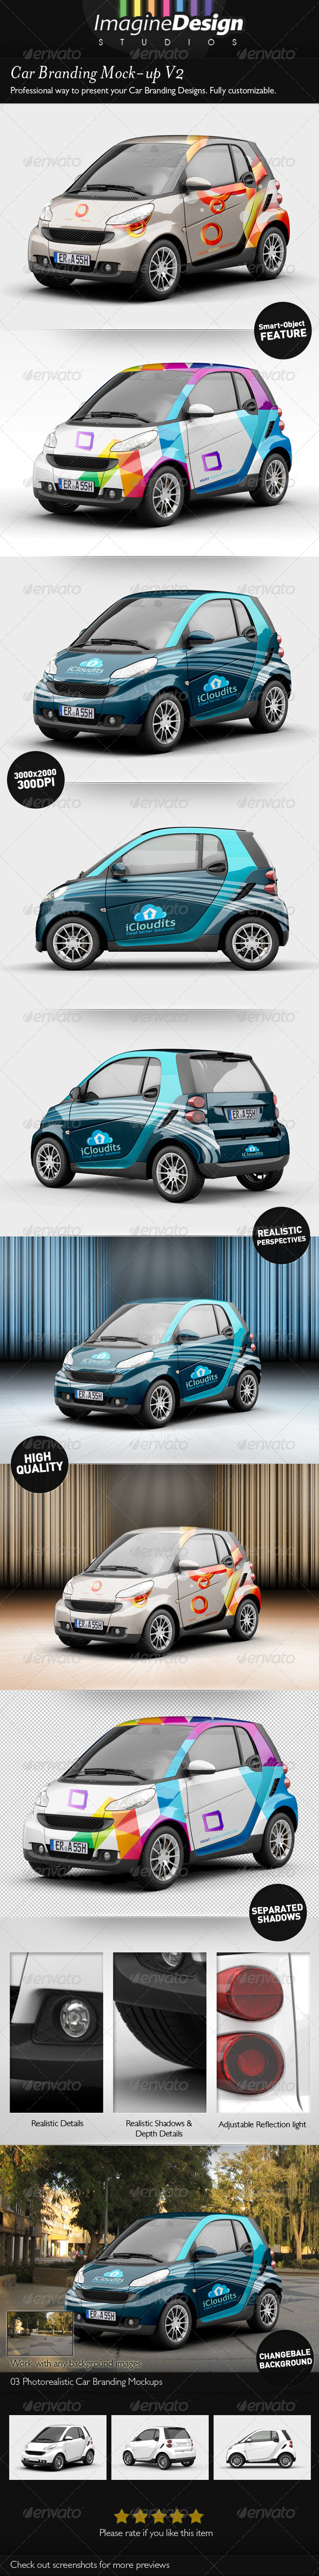 GraphicRiver Car Branding Mock-up V2 5218891